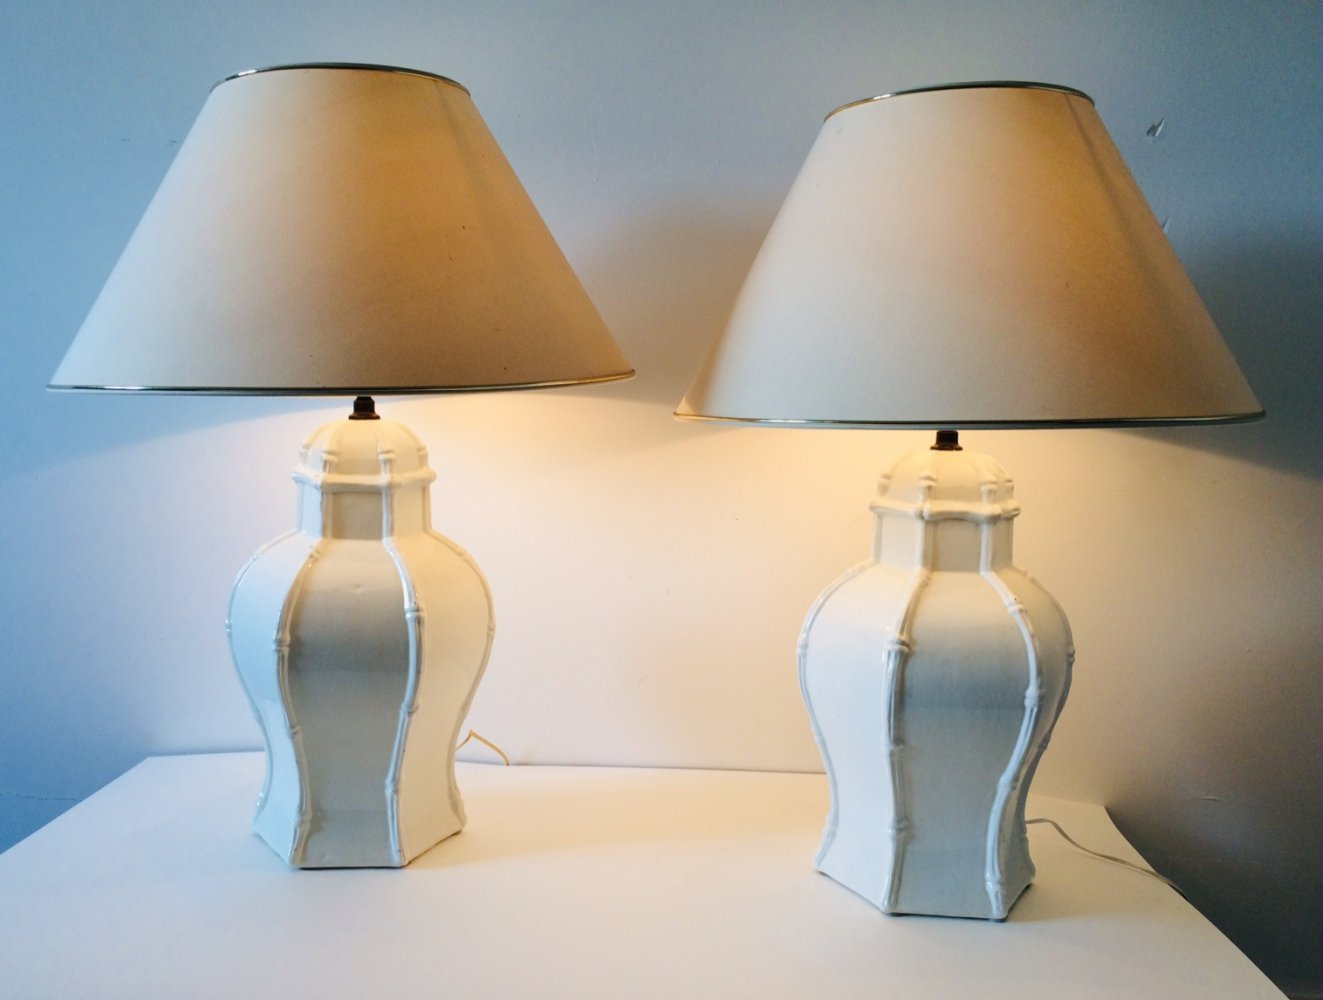 Pair of Deco White Ceramic Table Lamps by Casa Fina, Spain 1970